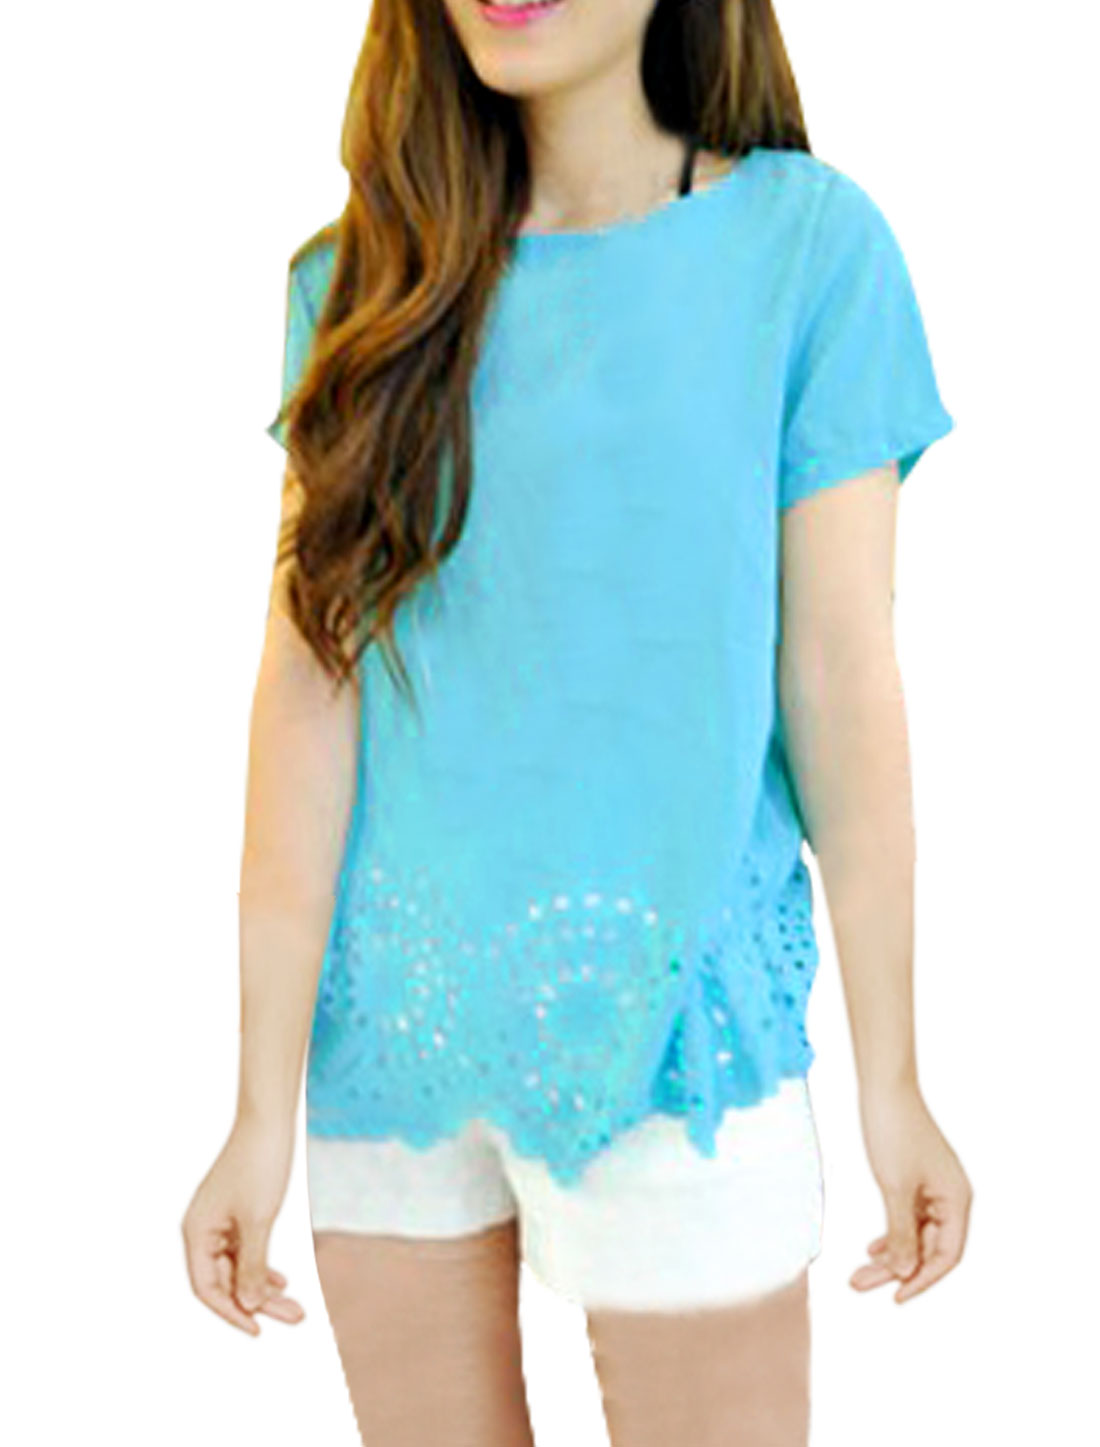 Woman Round Neck Short Sleeve Wavy Hem Design Sky Blue Chiffon Blouse XS